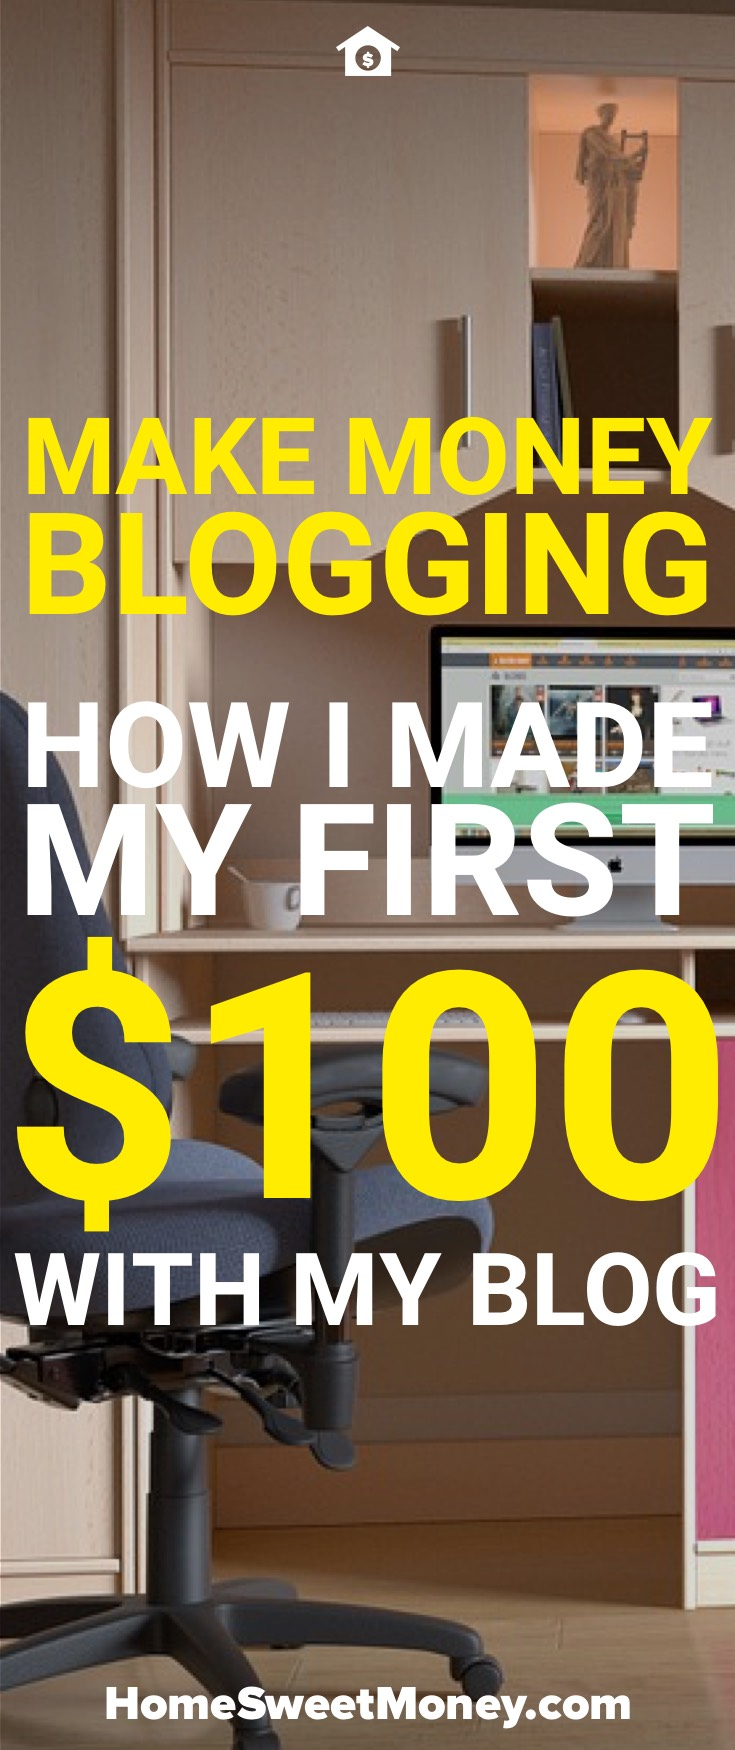 Make Money Blogging: How I Made My First $100 Blogging